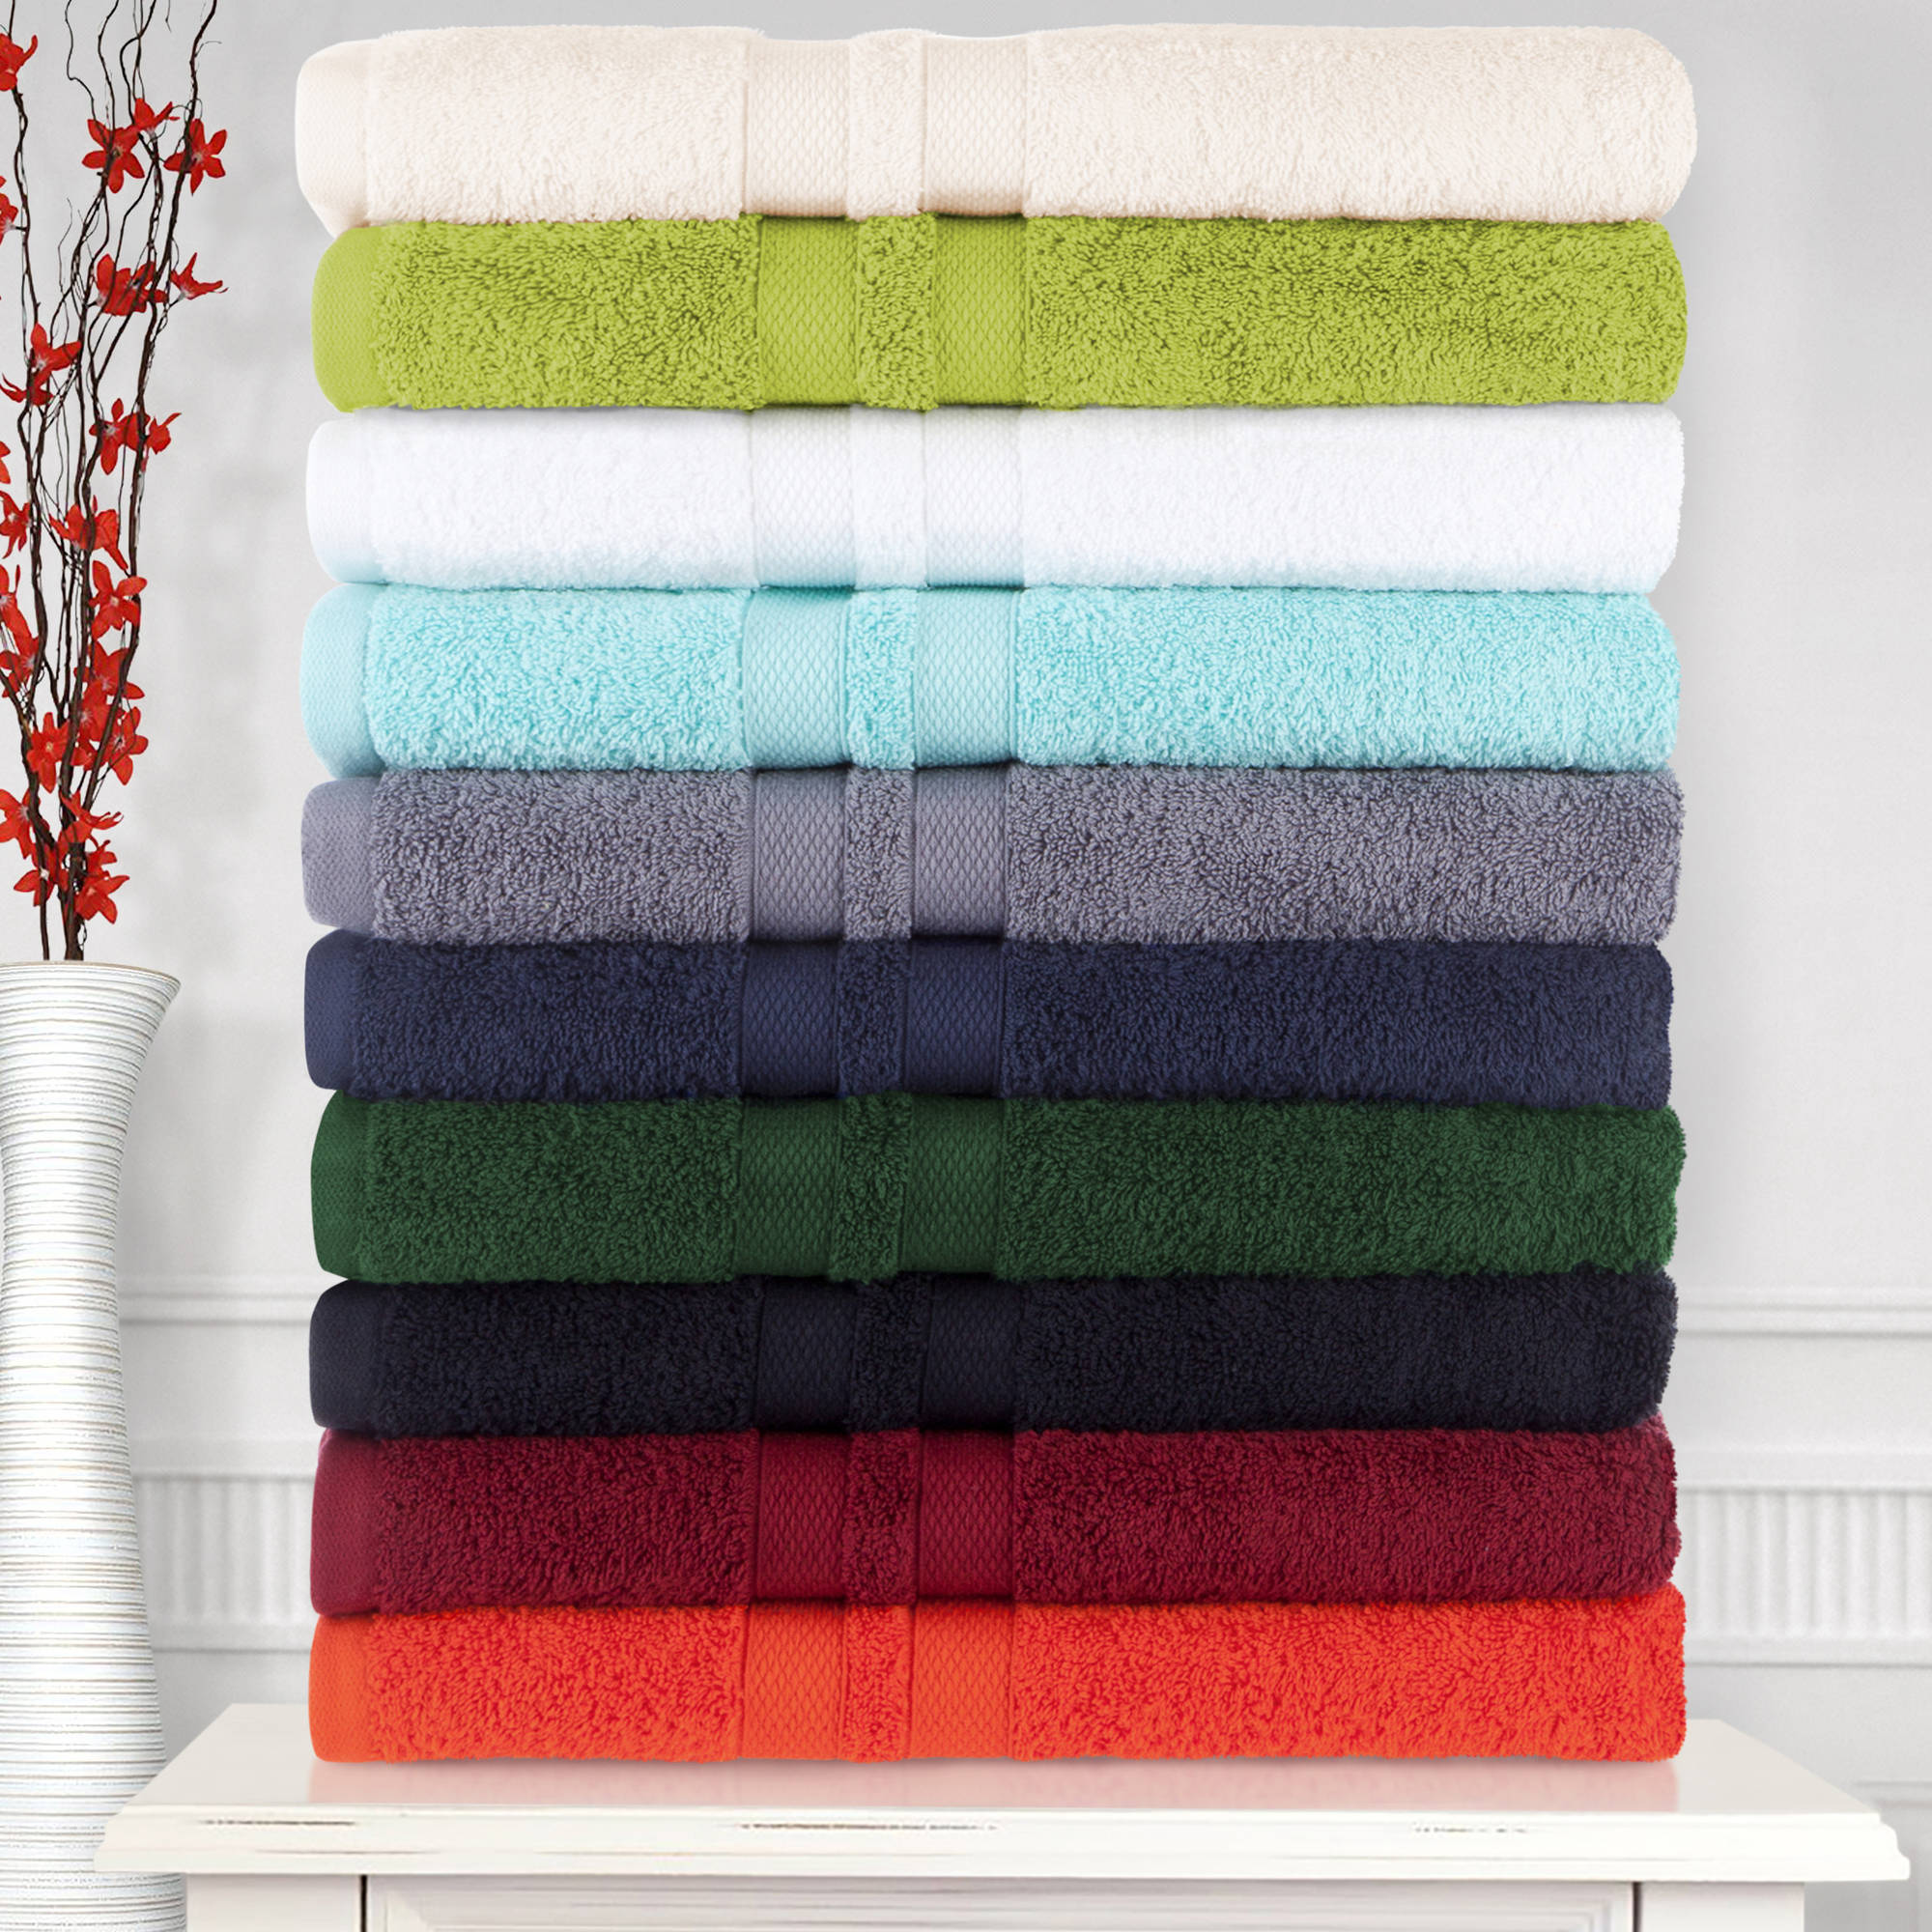 Superior Ultra Soft 100% Cotton 6-Piece Towel Set - (2 face+2 hand+2 bath)